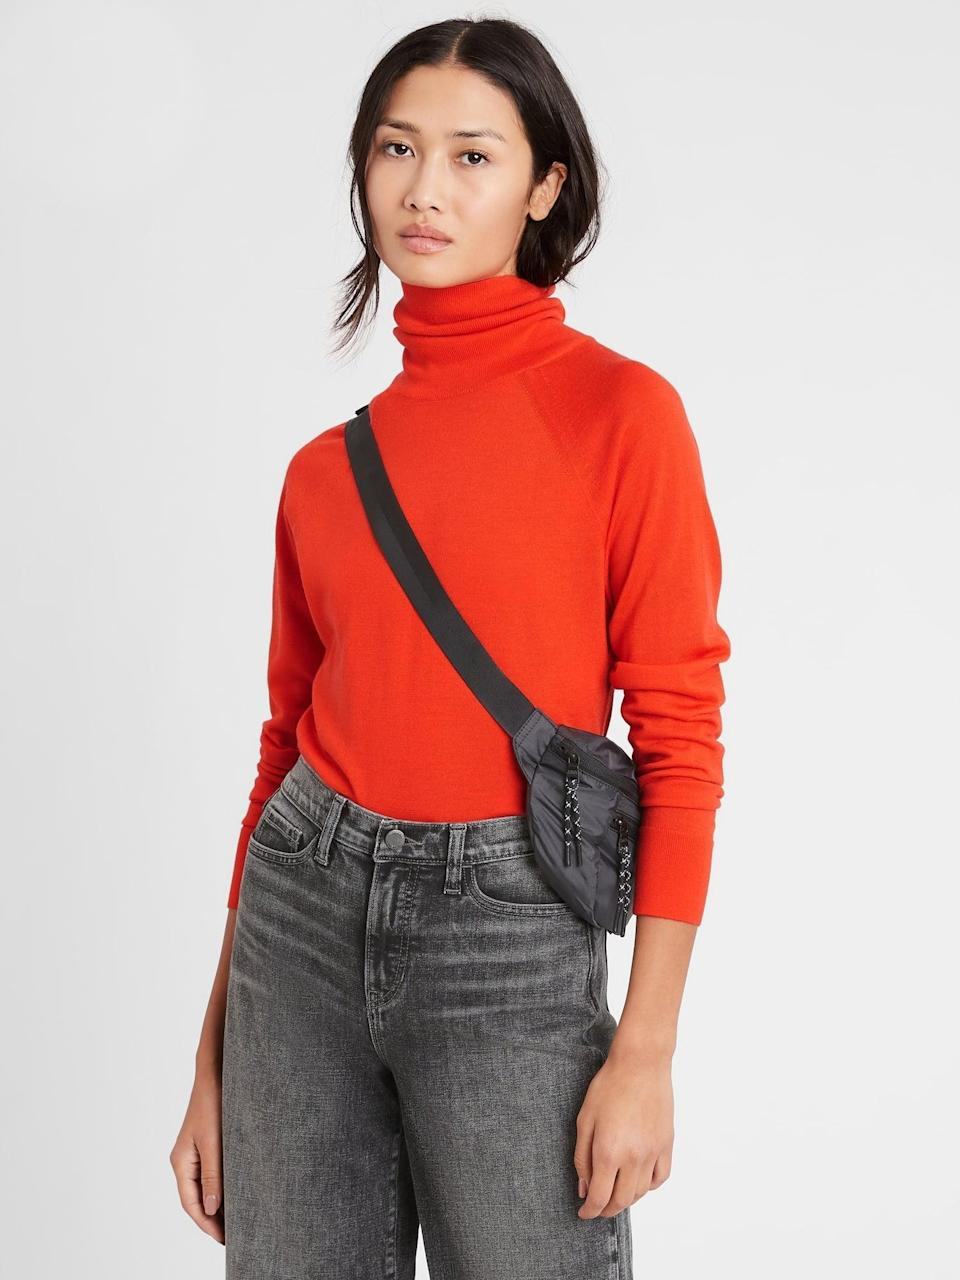 <p>Add a beautiful poppy like pop of color to your winter wardrobe with this <span>Banana Republic Merino Turtleneck Sweater in Responsible Wool in Autumn Orange</span> ($23, originally $80). </p>